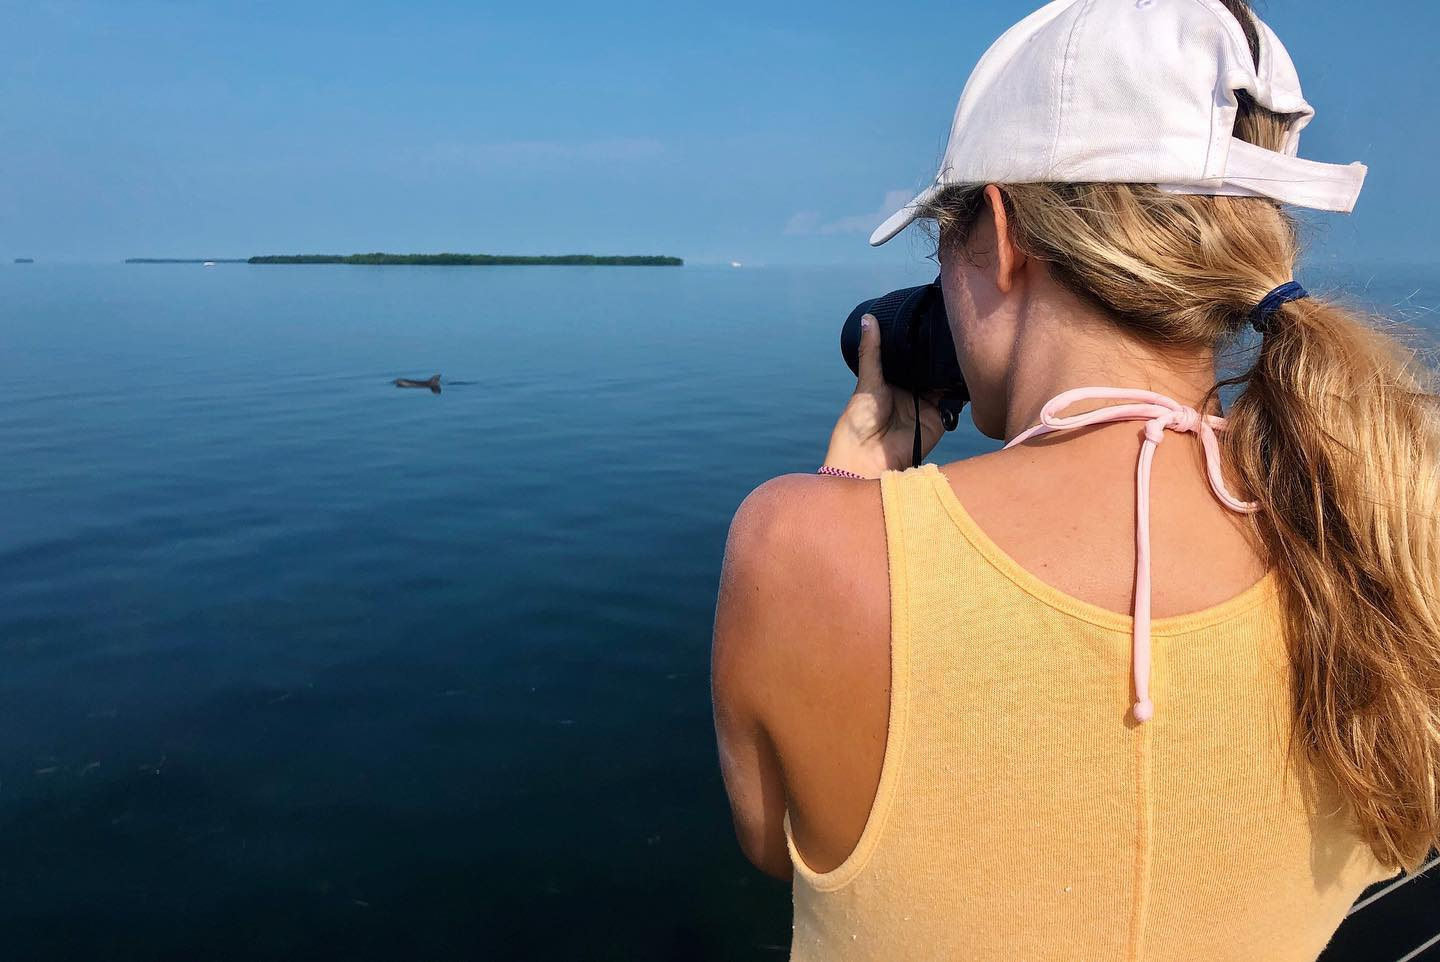 researcher photographing a dolphin